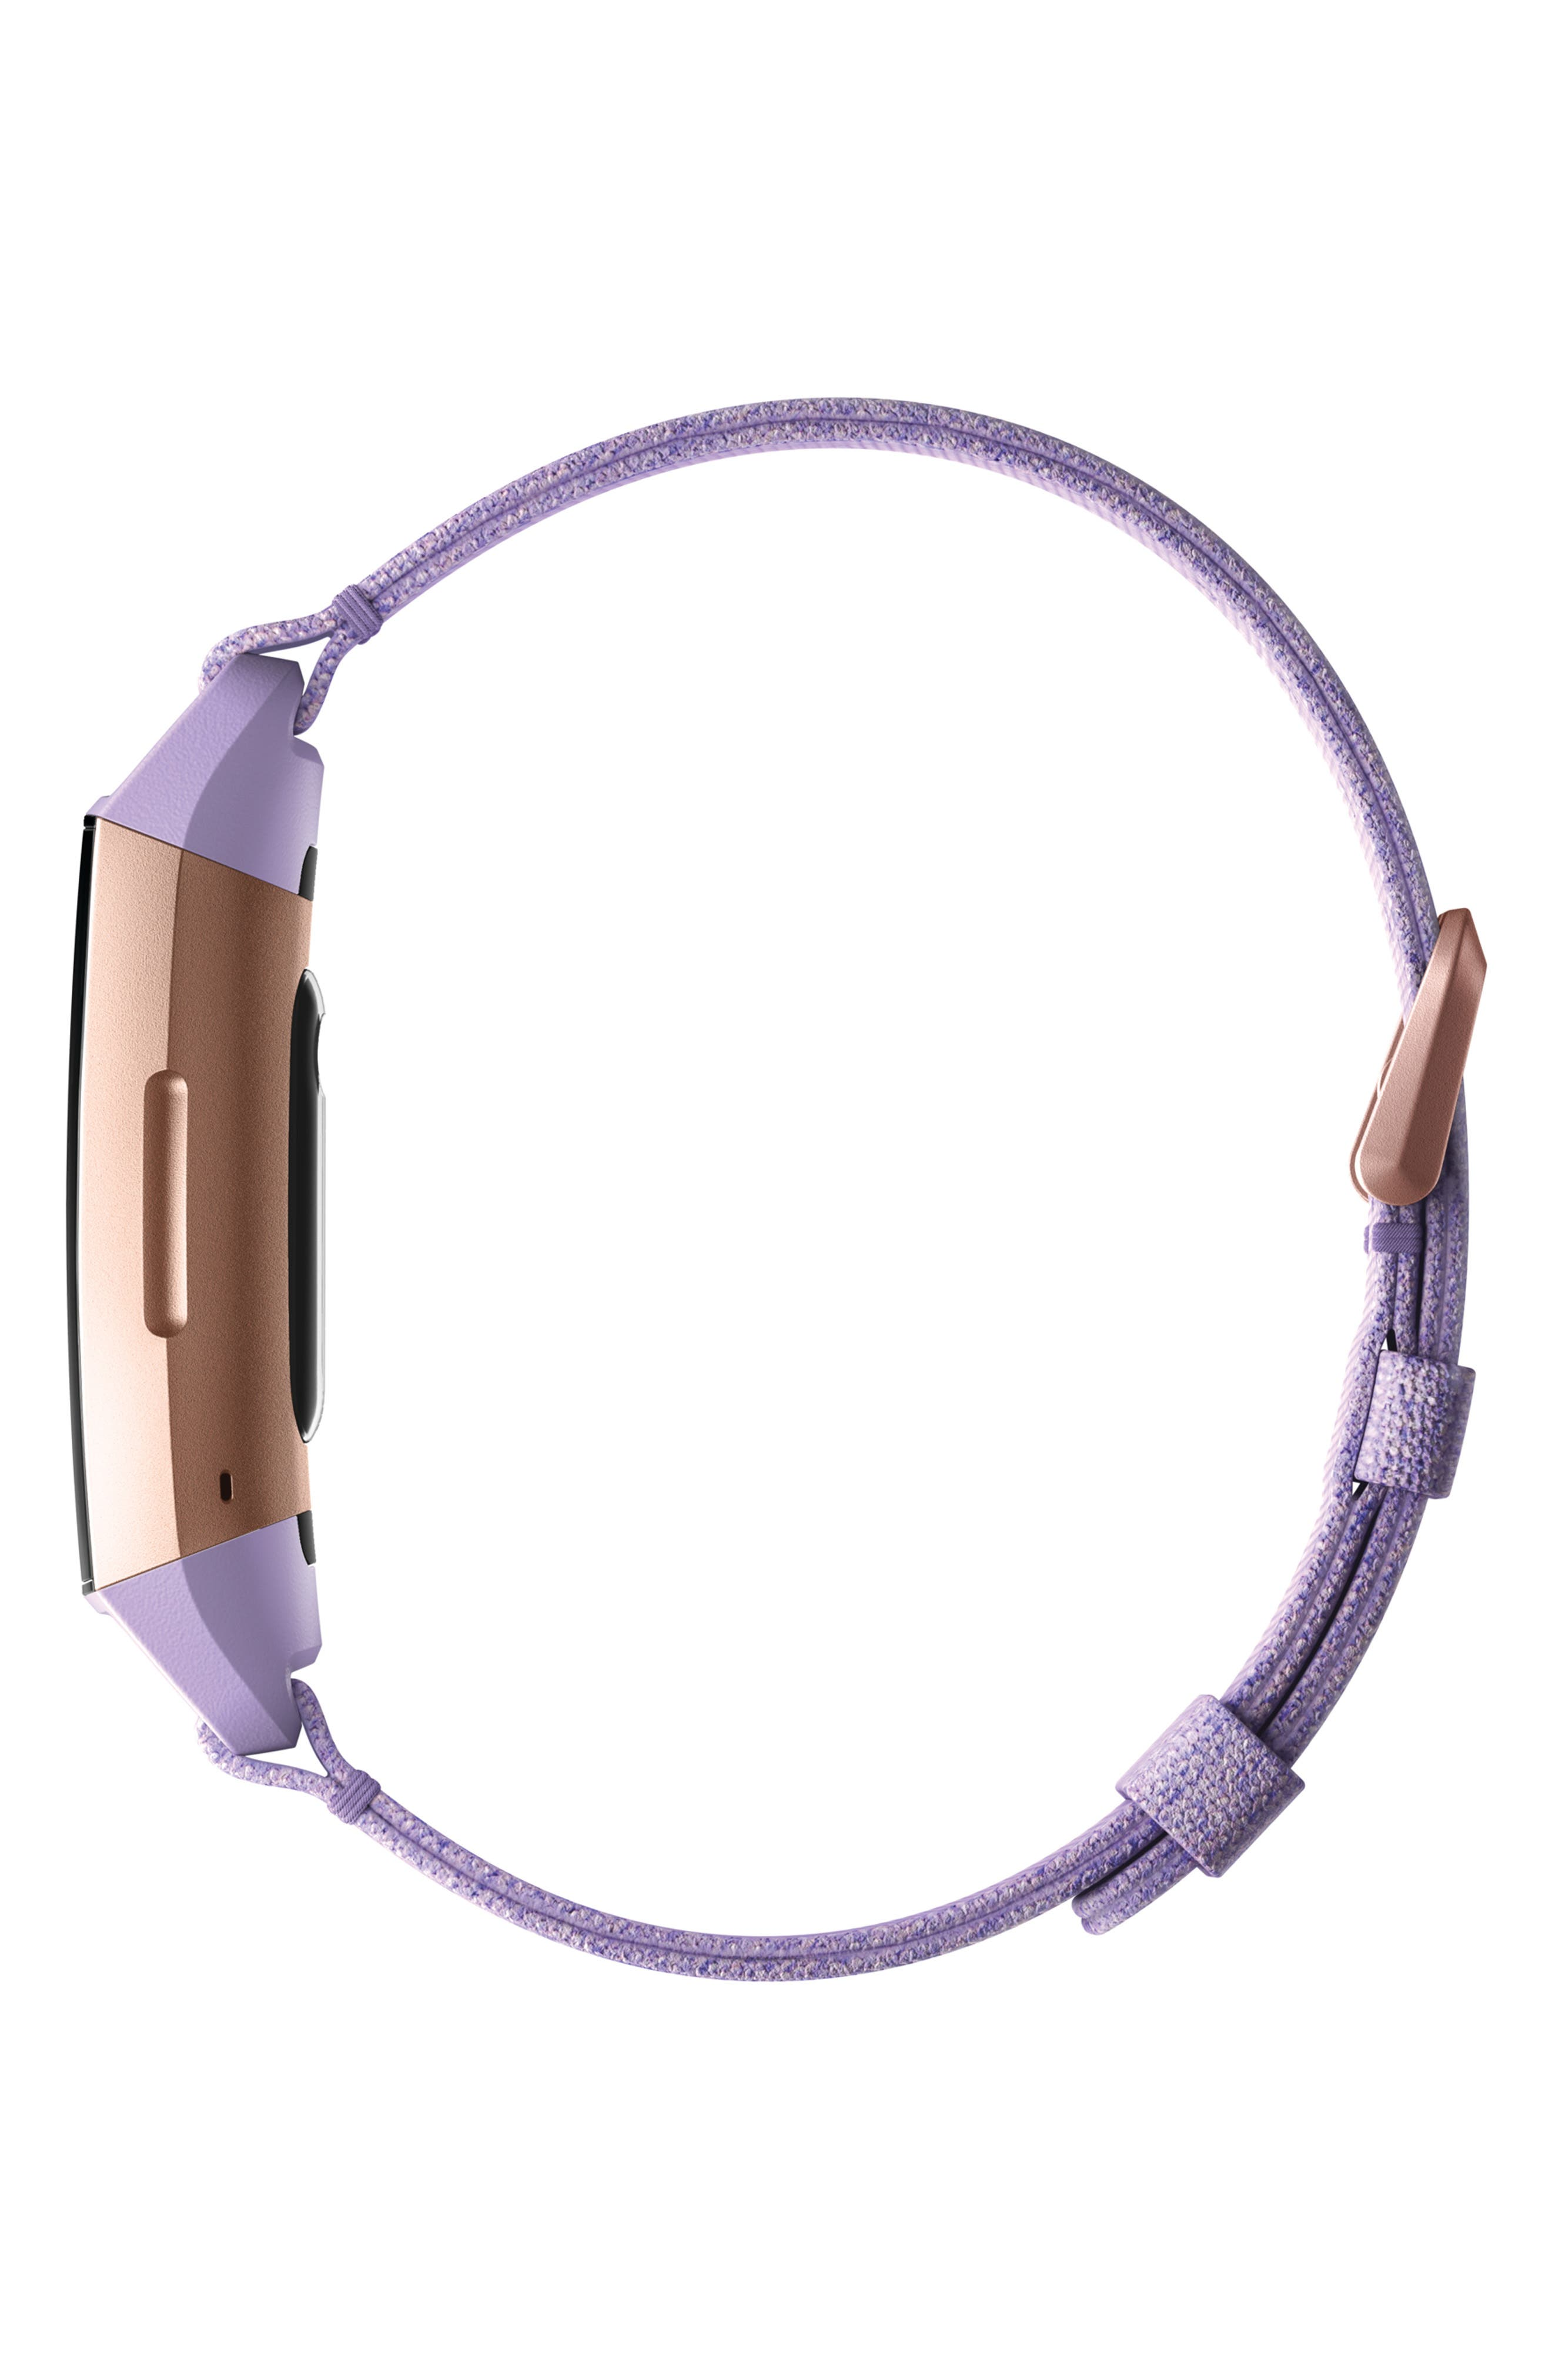 FITBIT, Charge 3 Special Edition Wireless Activity & Heart Rate Tracker, Alternate thumbnail 3, color, LAVENDER